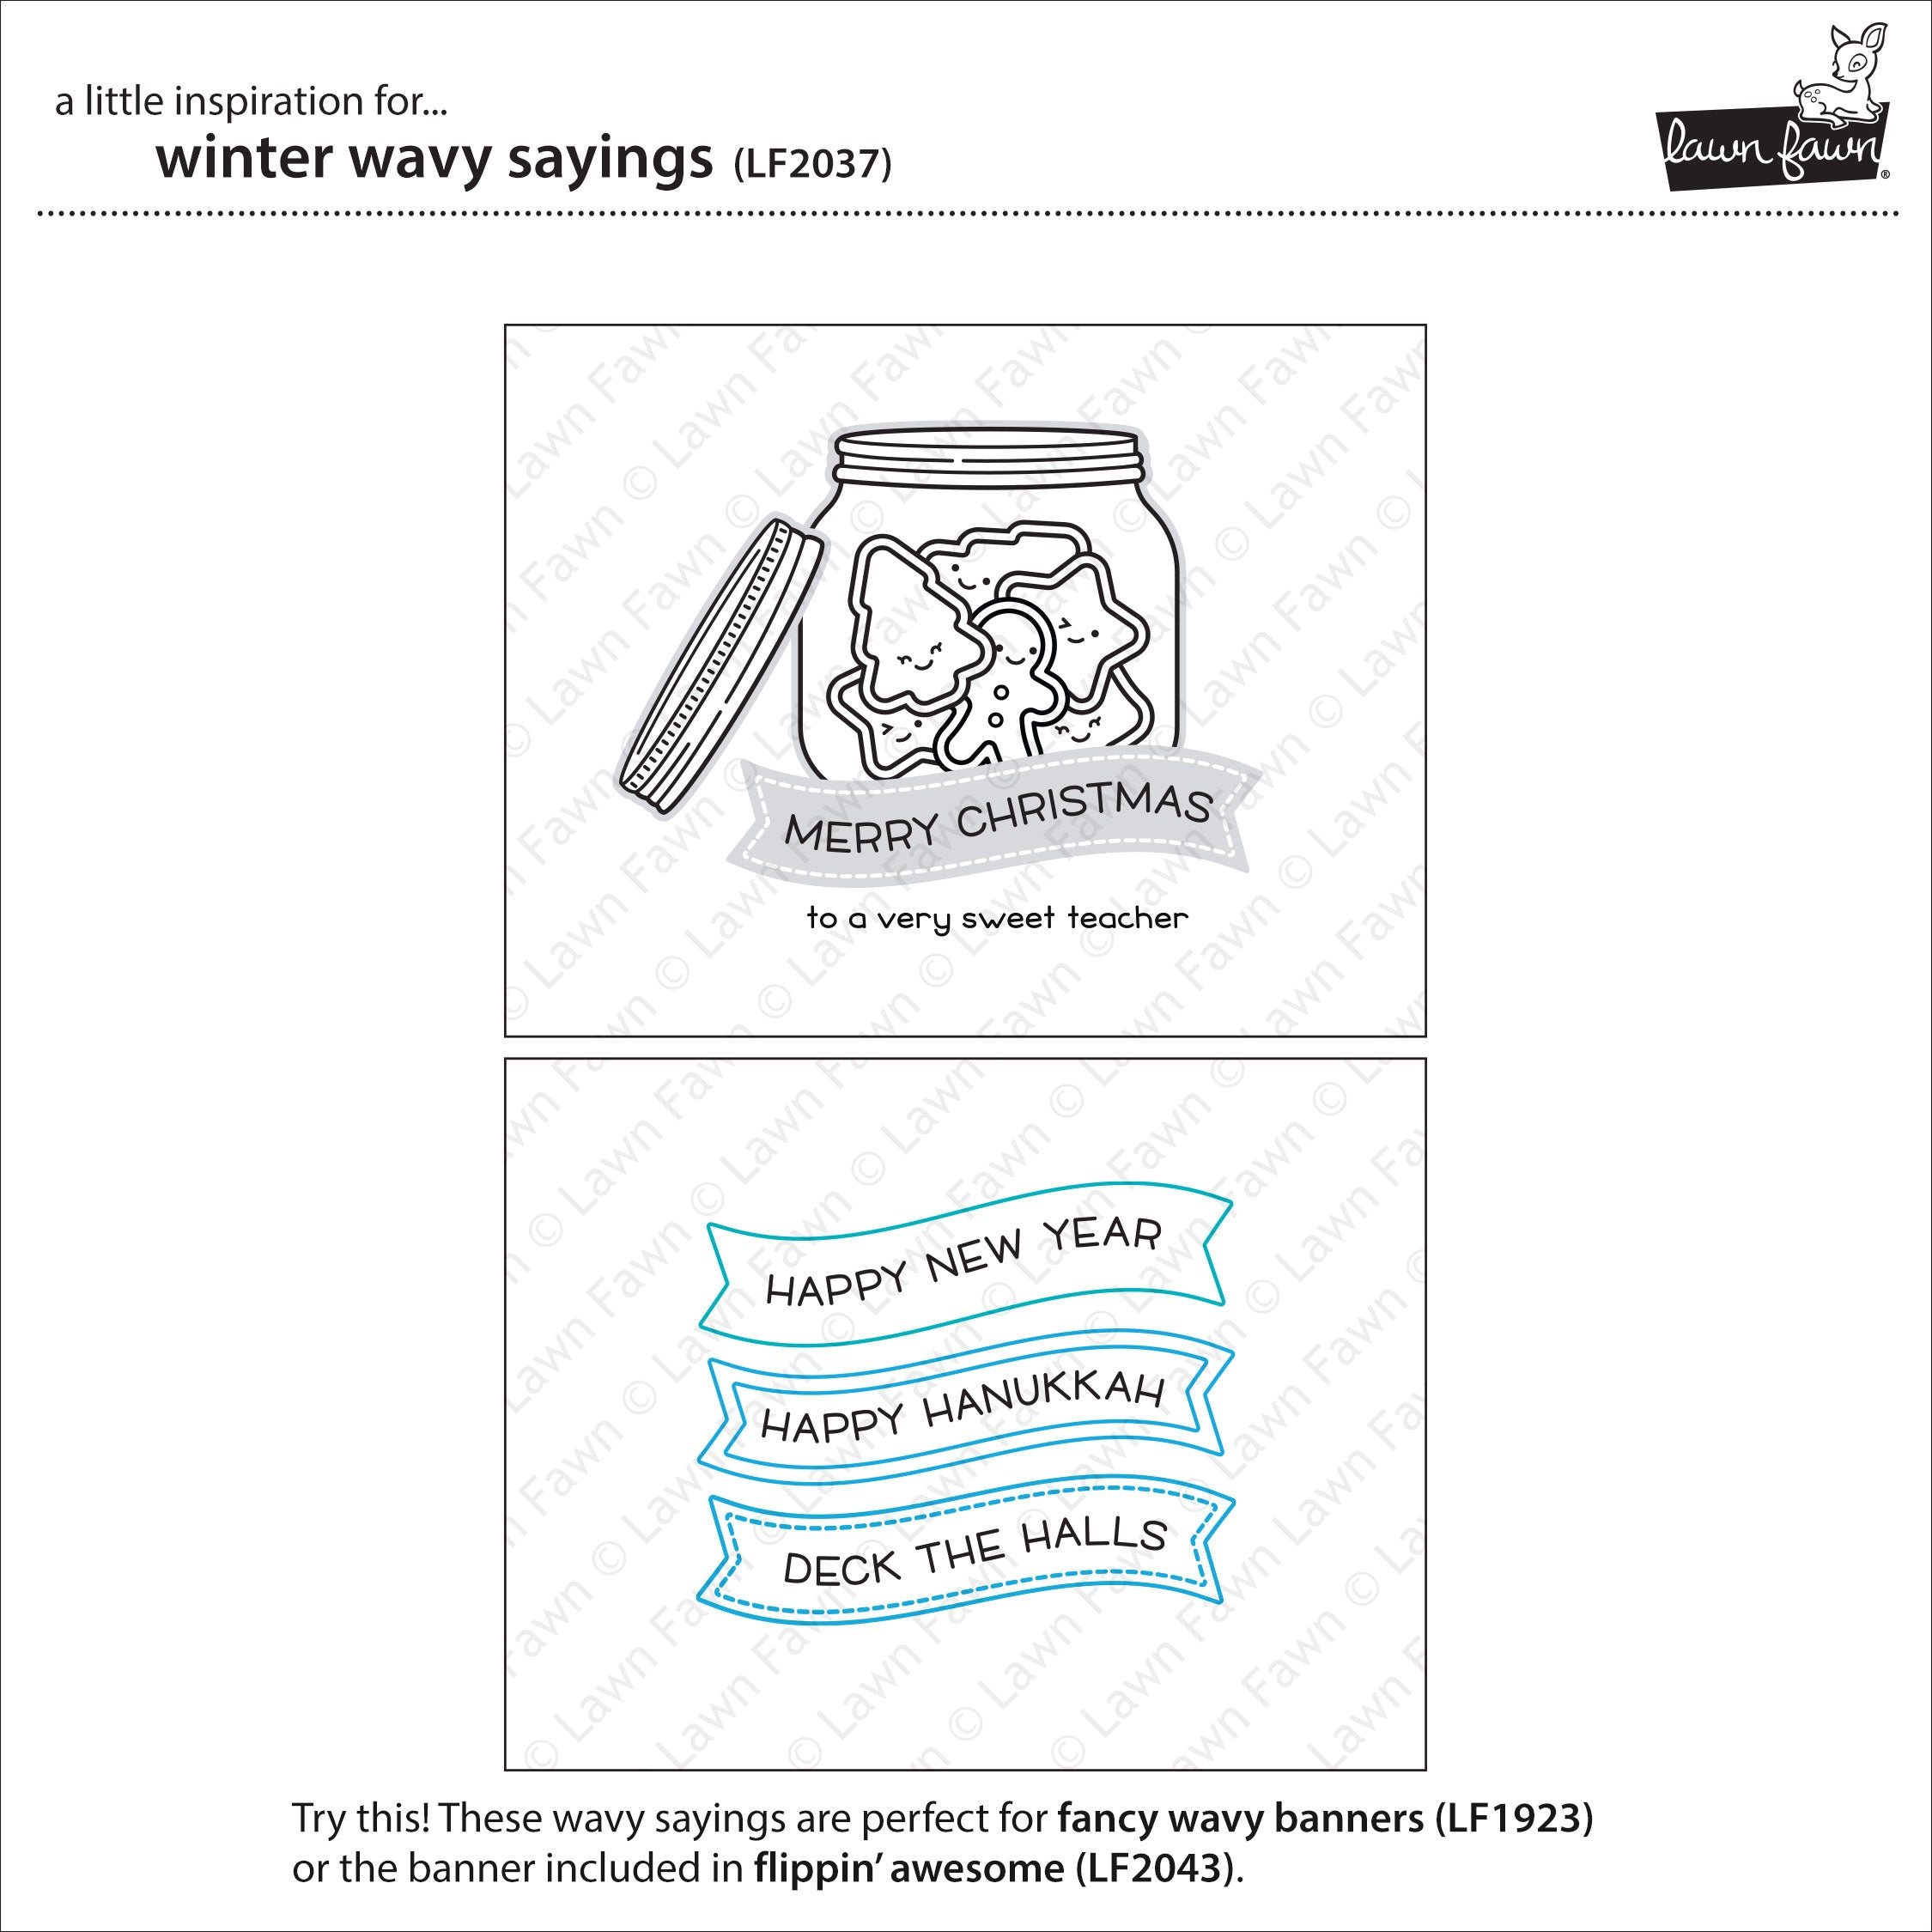 LF2037 Lawn Fawn Winter Wavy Sayings 3x4 Clear Stamps